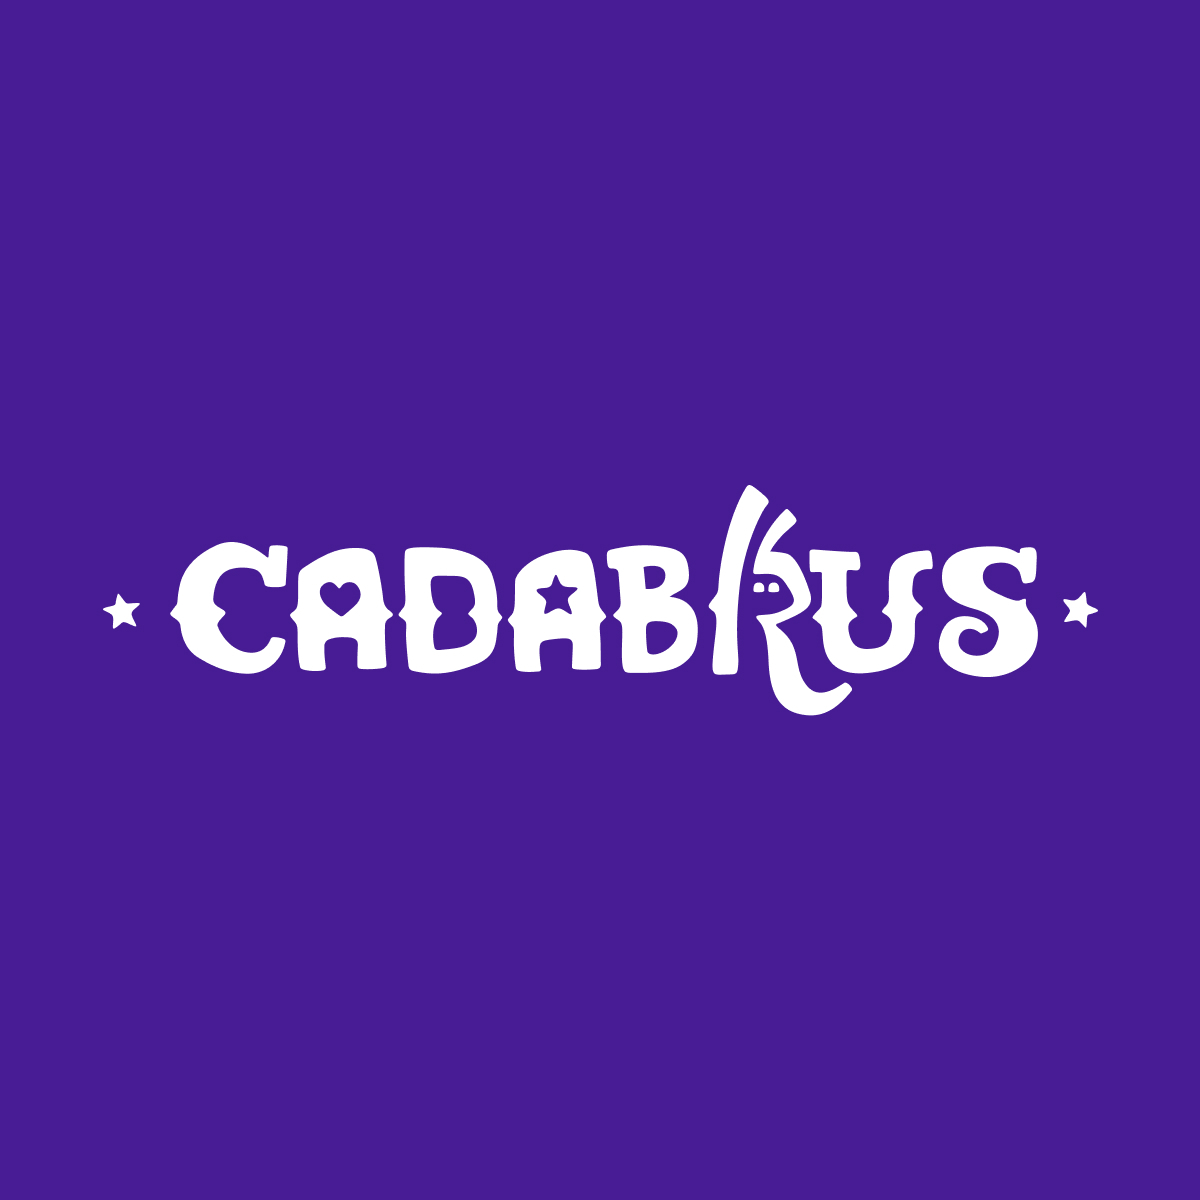 Cadabrus welcome